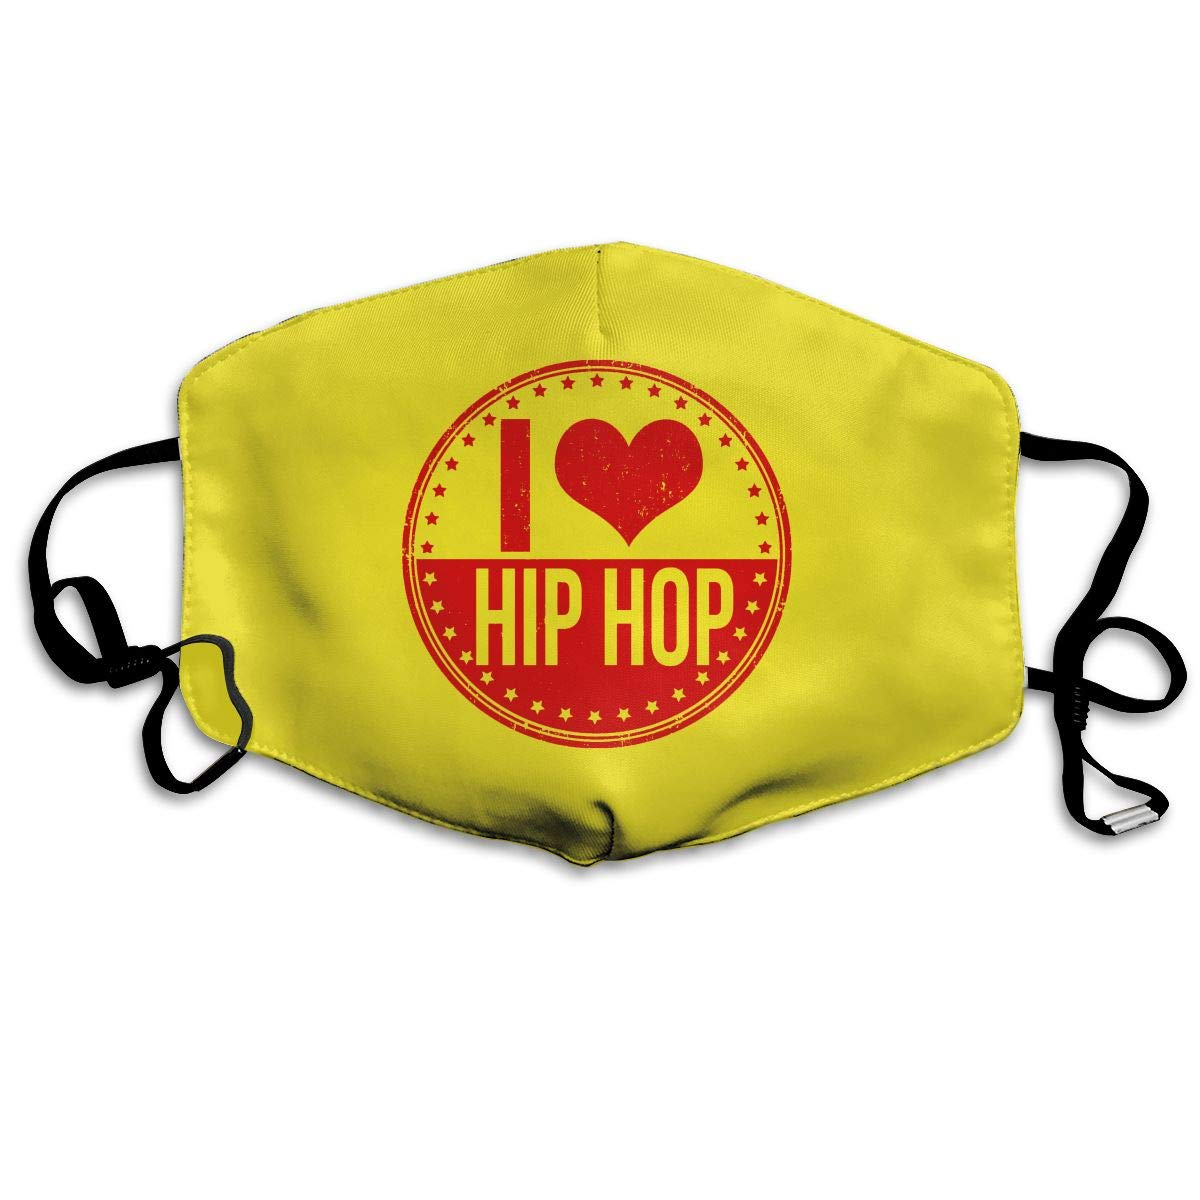 Mouth-Muffle Face Mask Unisex Love Hip Hop Adjustable Washable Anti-dust Woman Mens